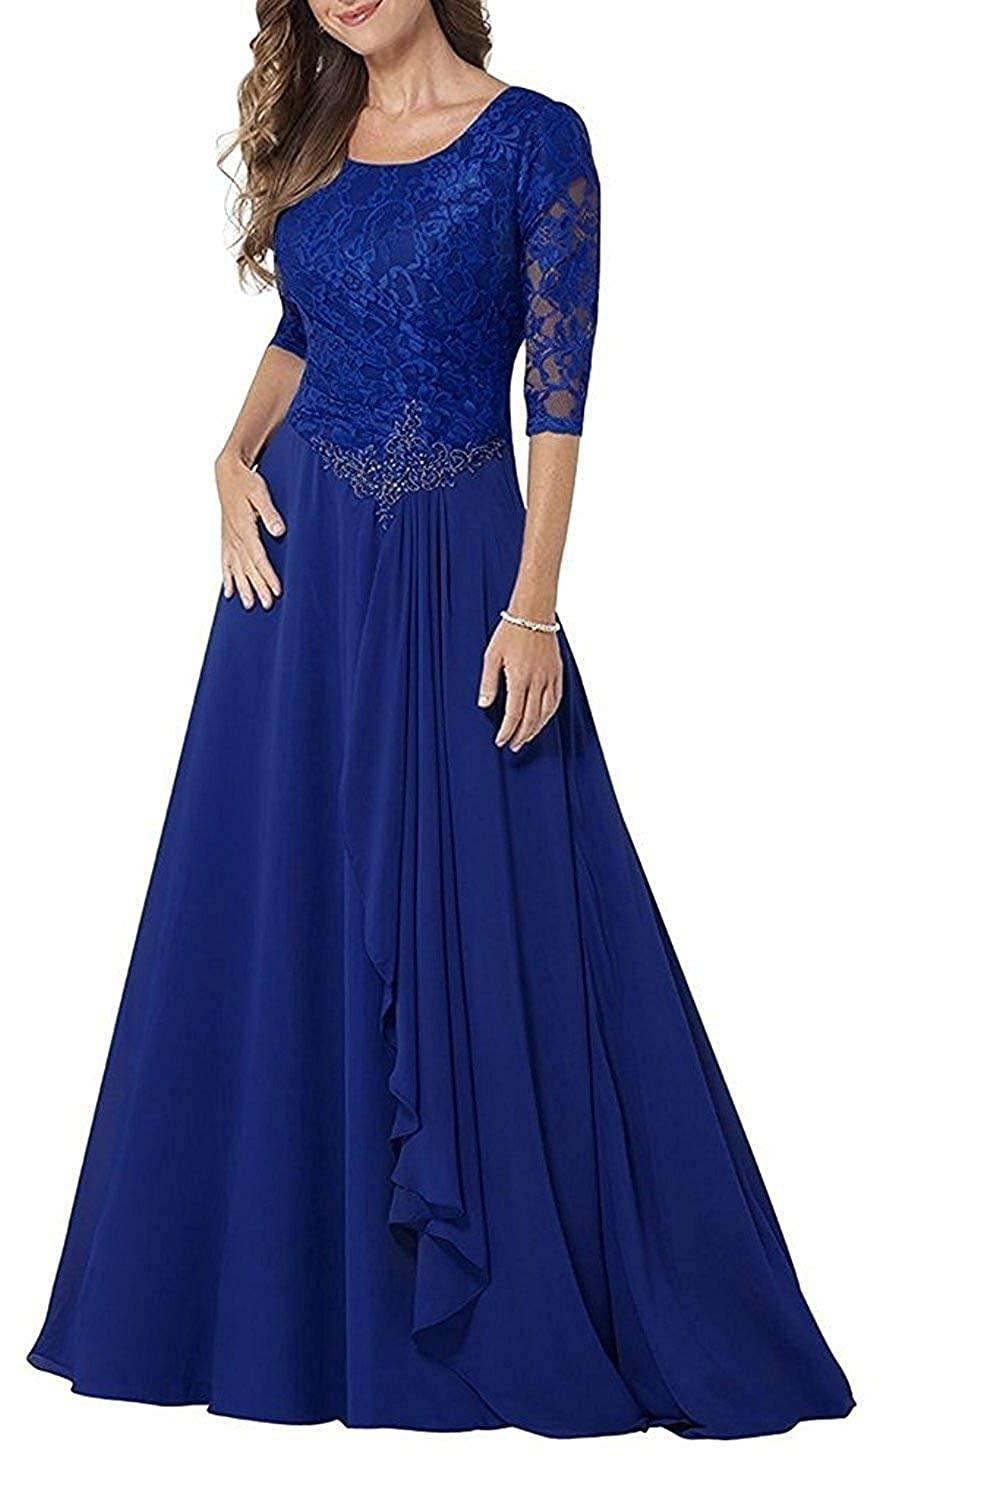 Royal bluee Mother of The Bride Dresses Half Sleeve Lace Prom Party Wedding Gown